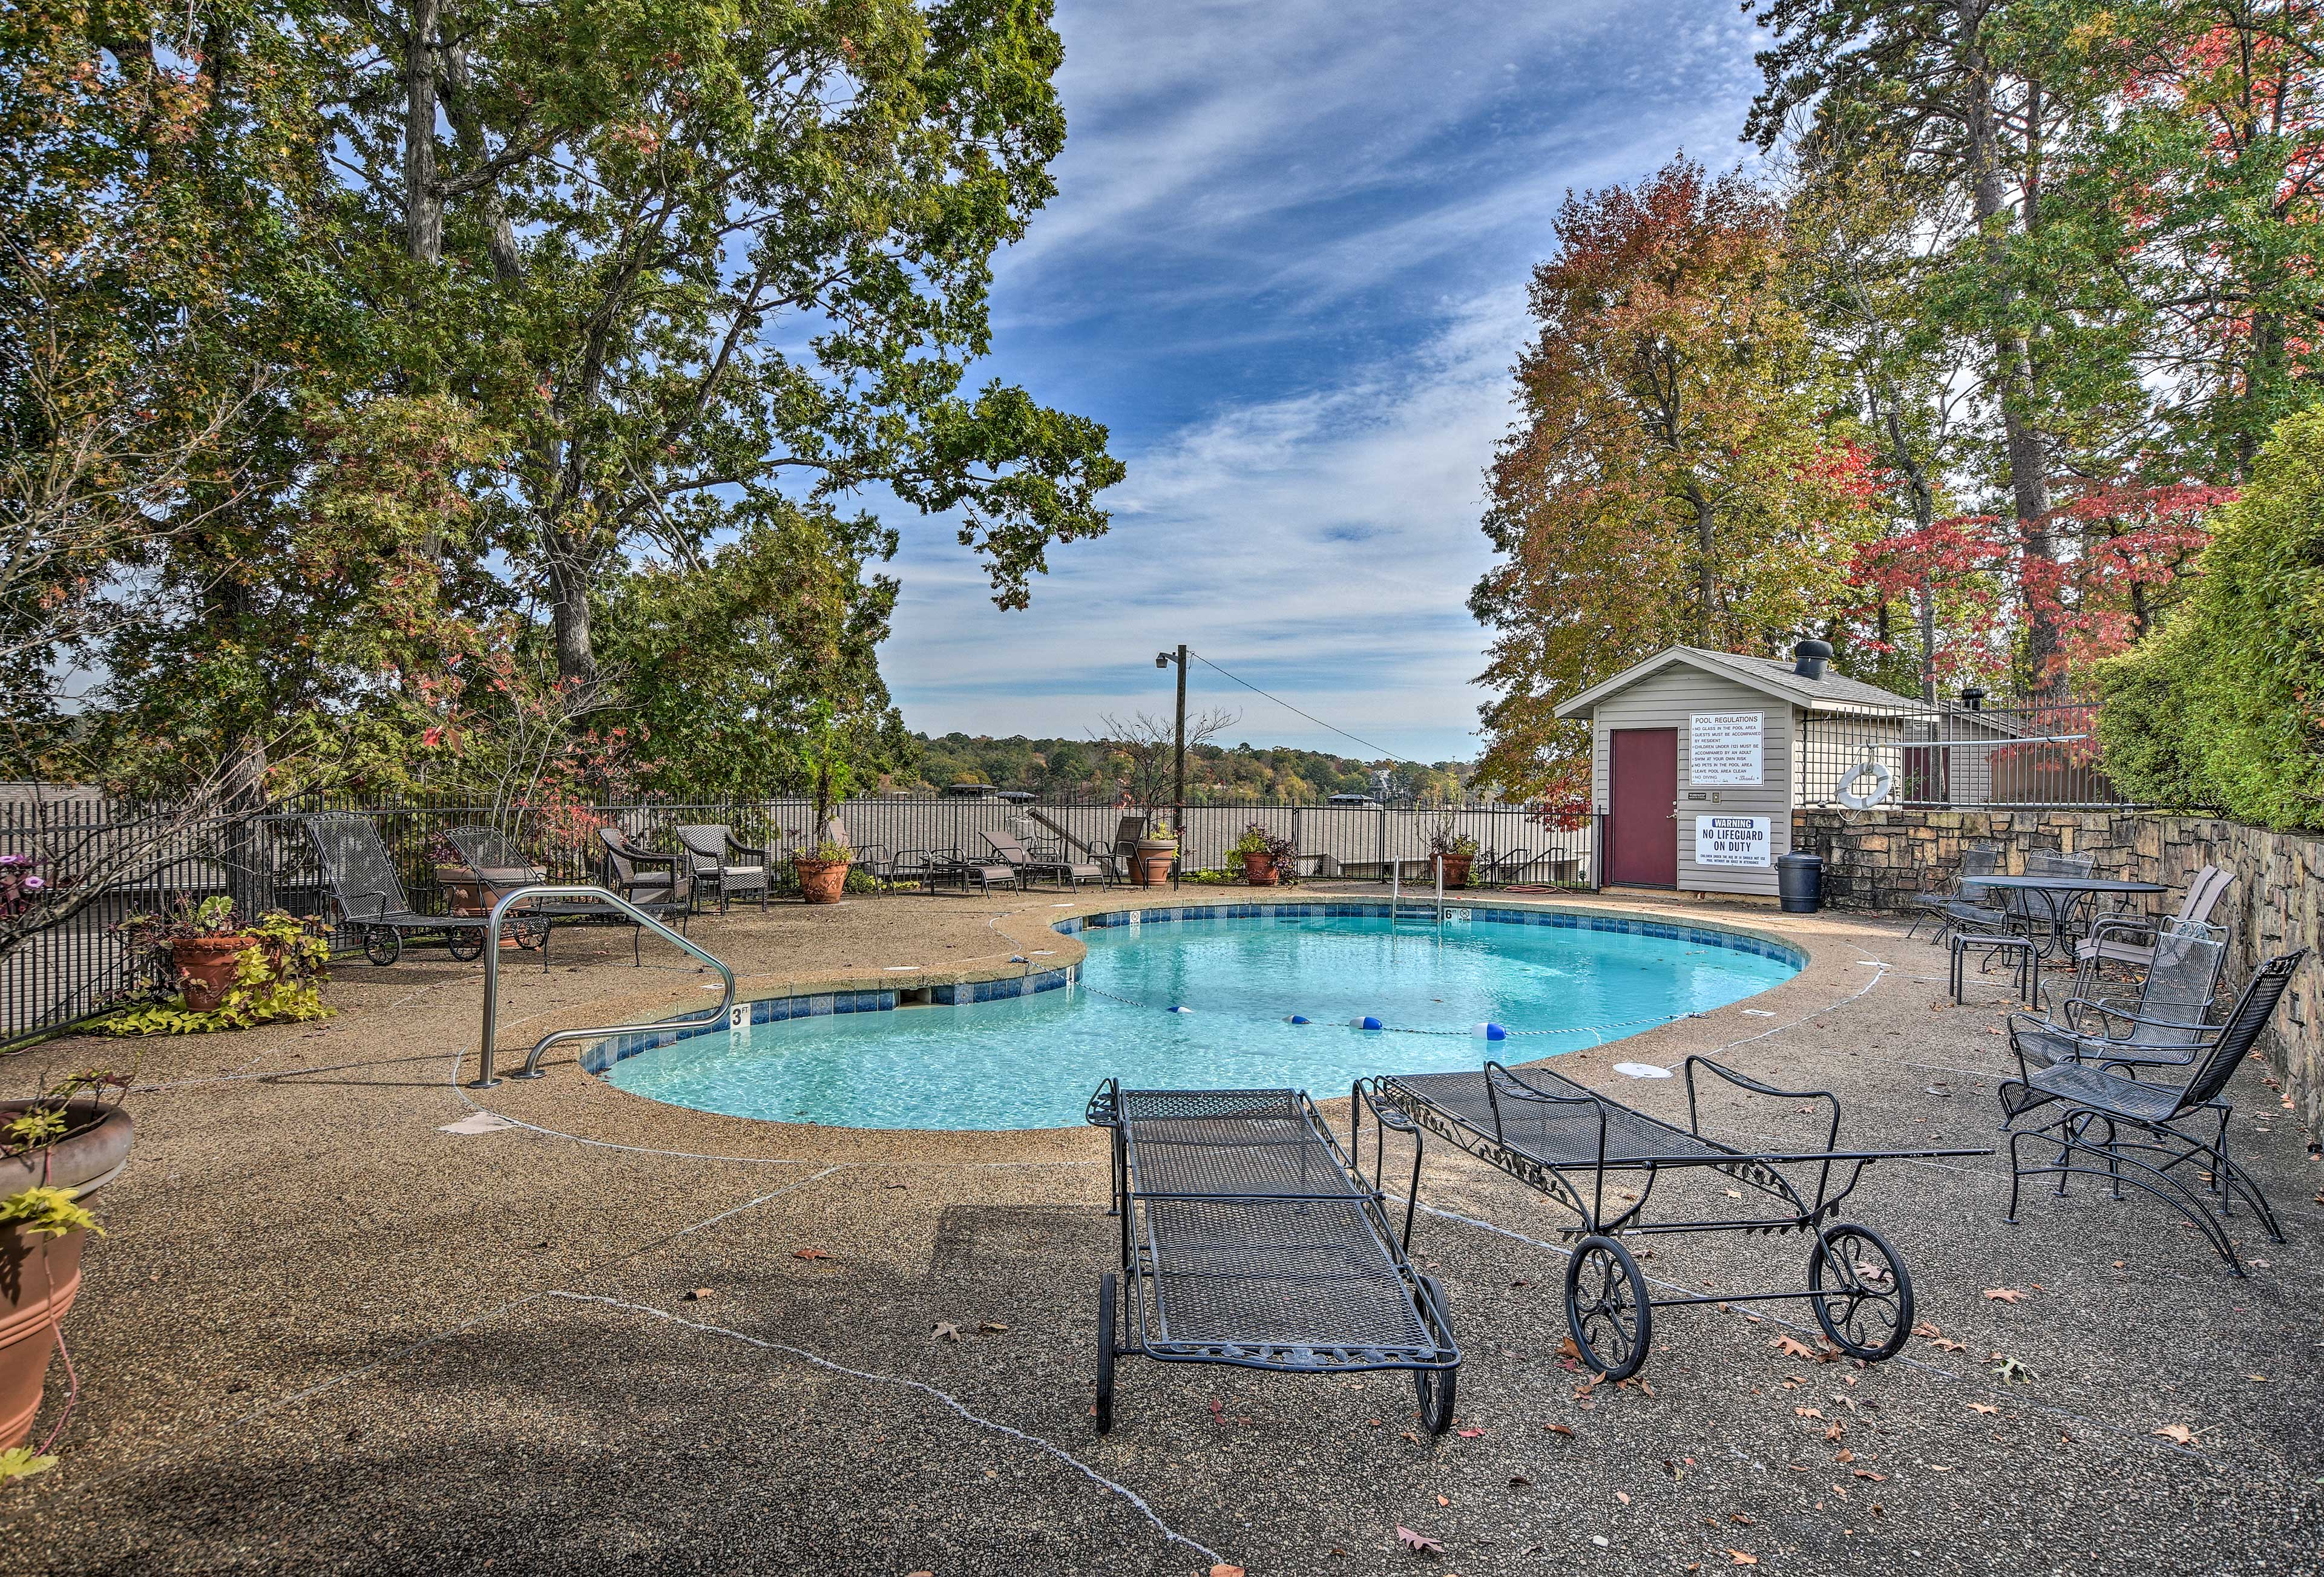 The community pool is open seasonally and does not require a key.